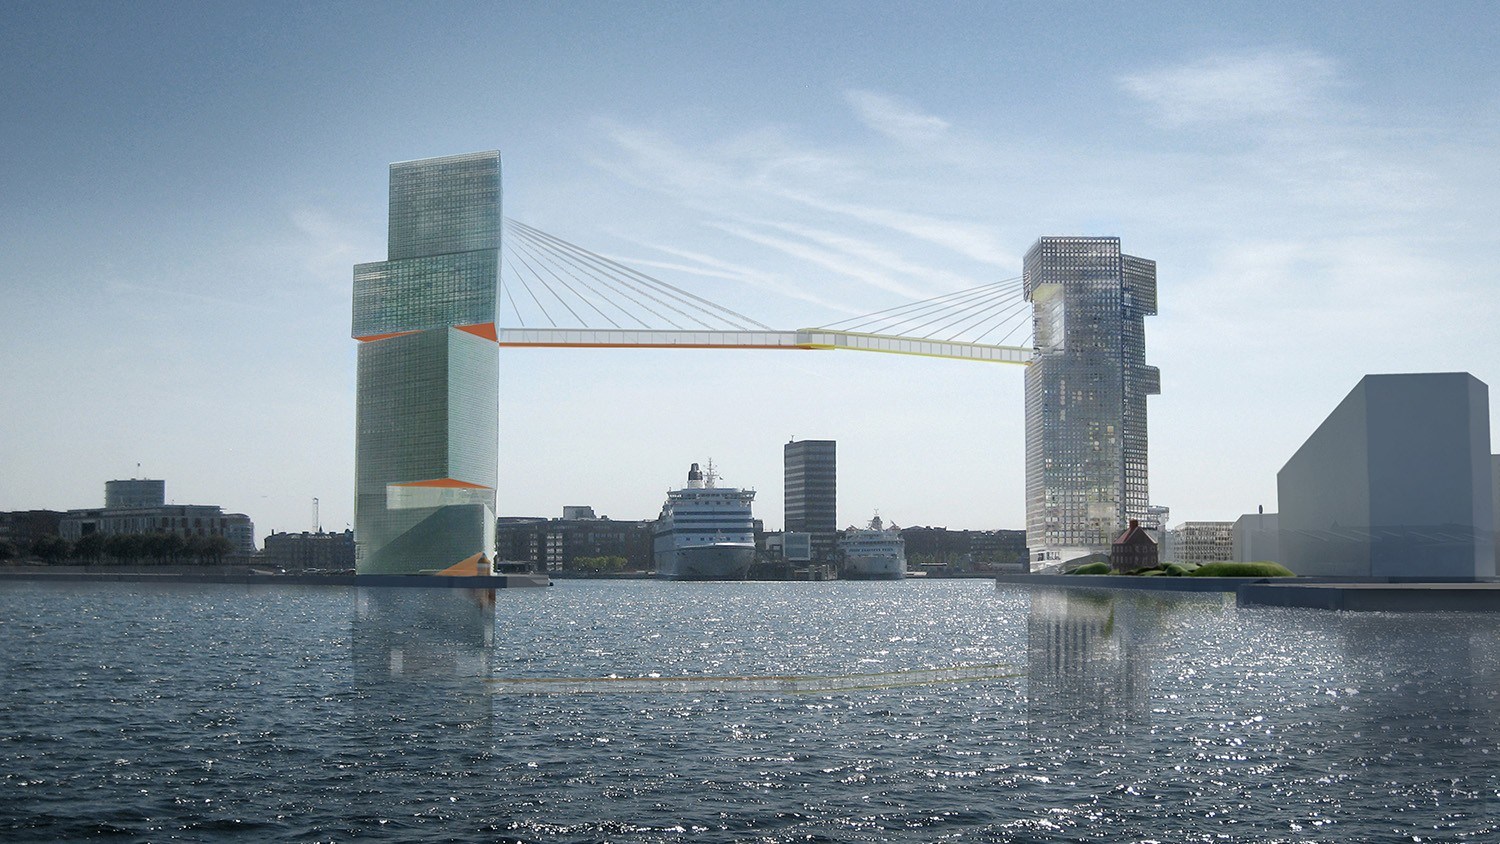 https://s3.us-east-2.amazonaws.com/steven-holl/uploads/projects/project-images/StevenHollArchitects_LM_CopehagenGateway_WH.jpg